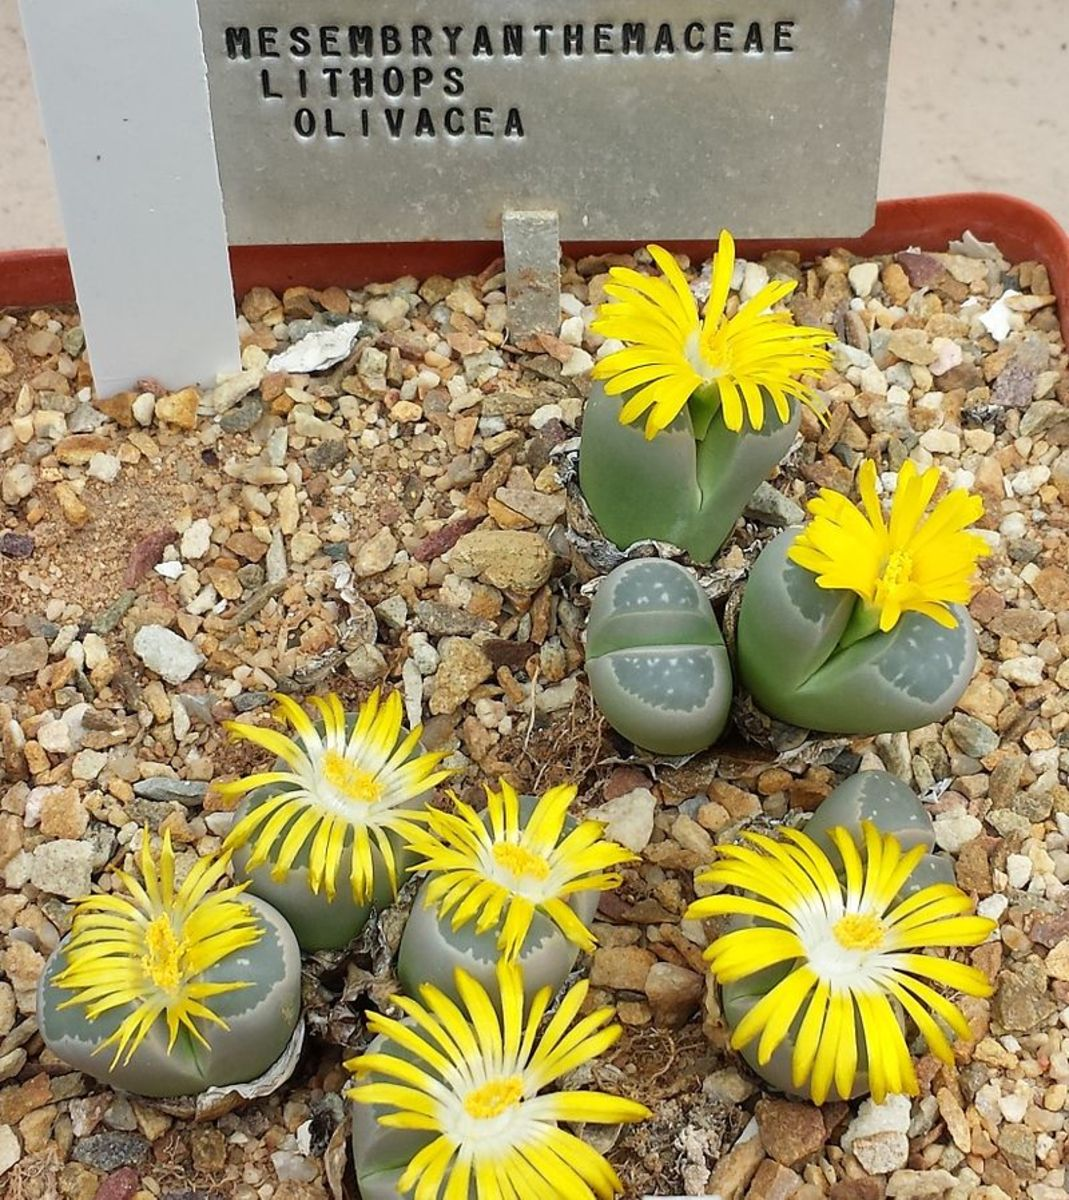 Depending on the species, lithop flowers can be yellow or white.